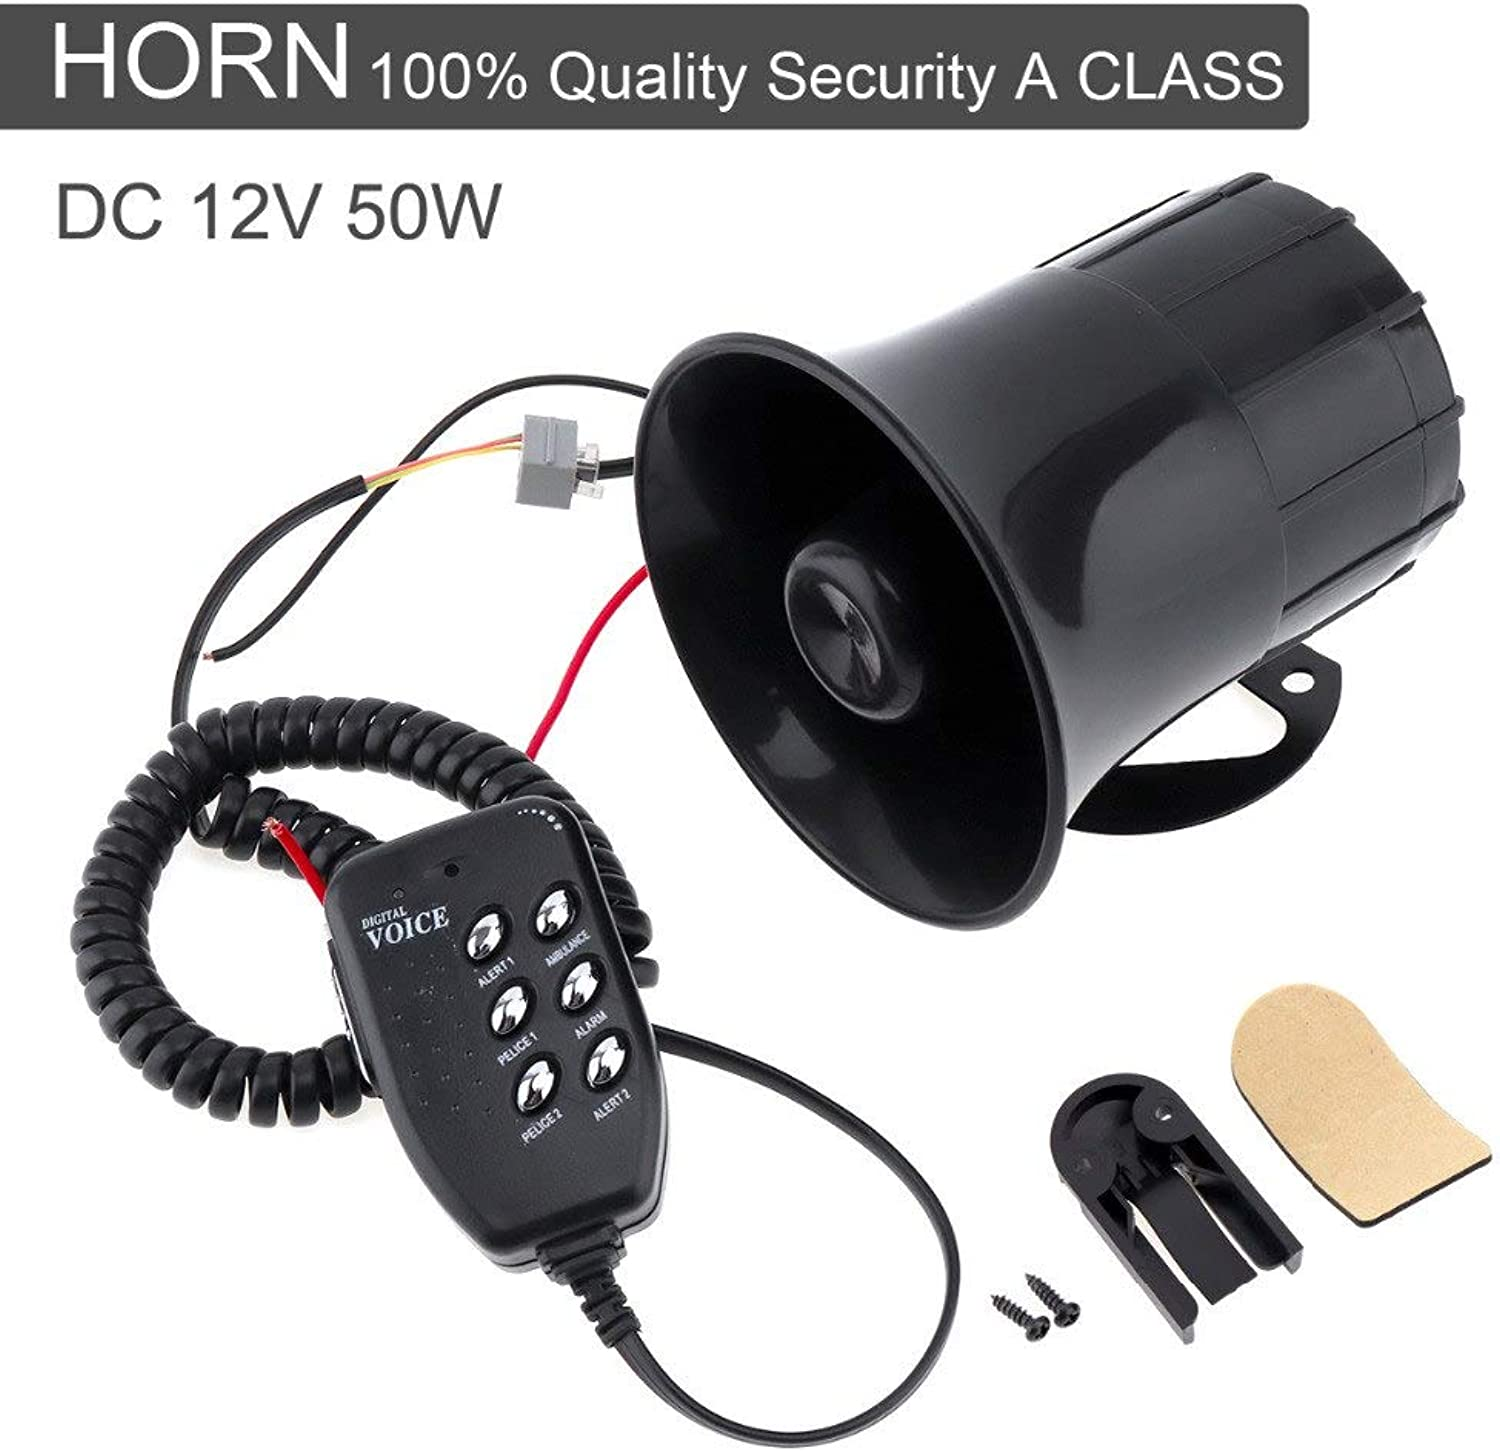 Star-ShopincUniversal 12V 50W 105db Loud Car Horn Siren with 6 Sound Tone for Auto Motorcycles Van Truck